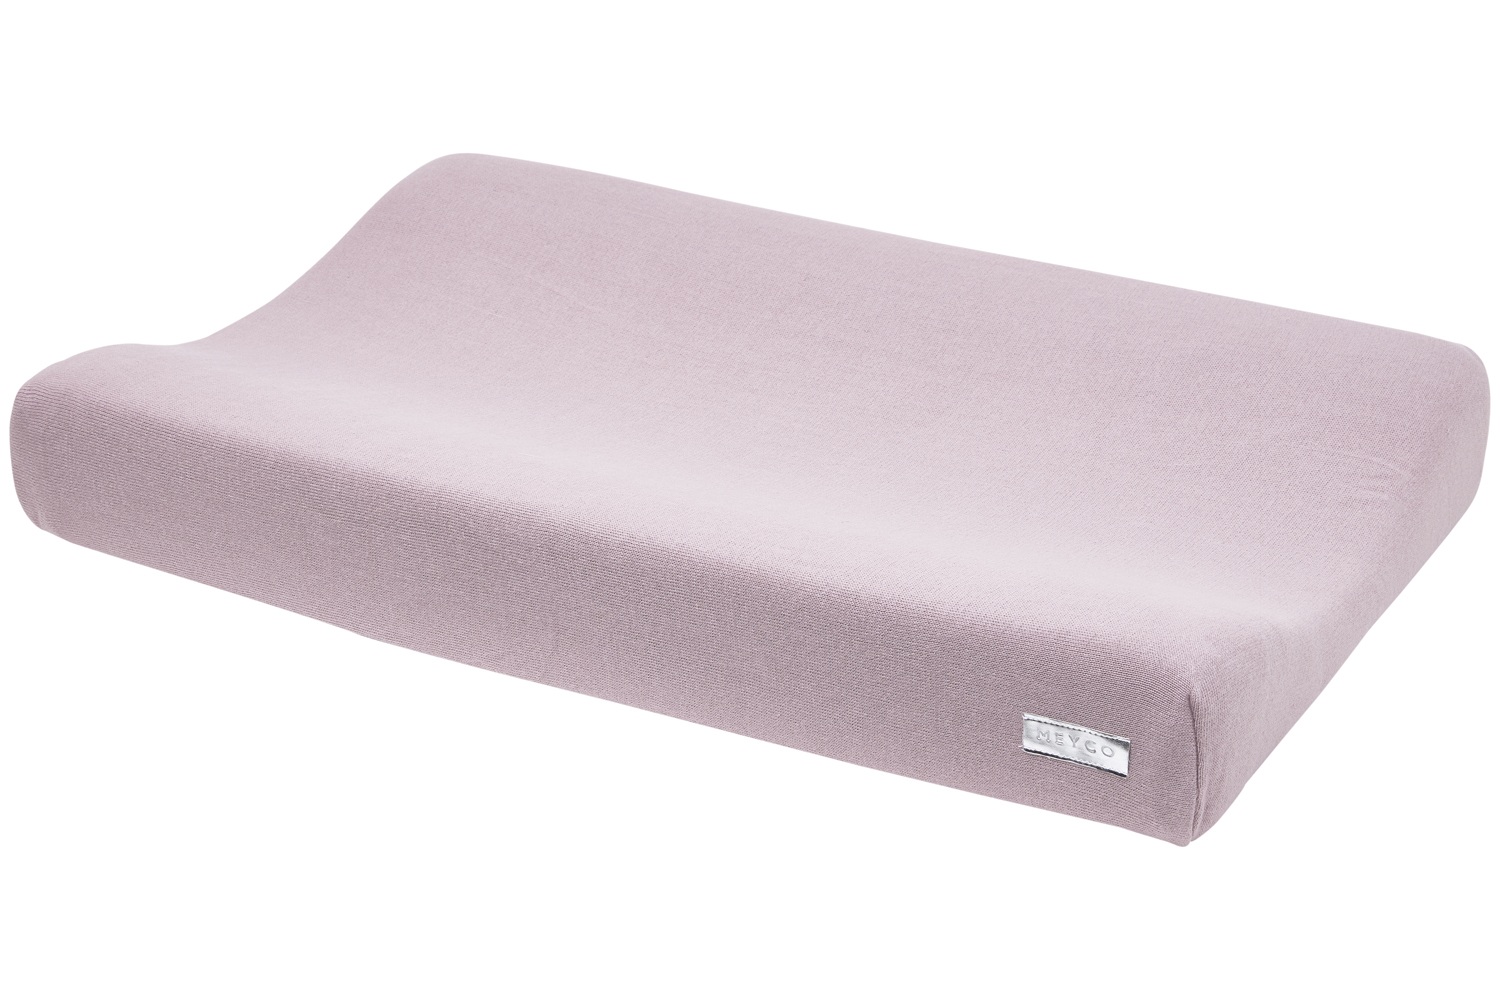 Changing Pad Cover Knit Basic - Lilac - 50X70cm